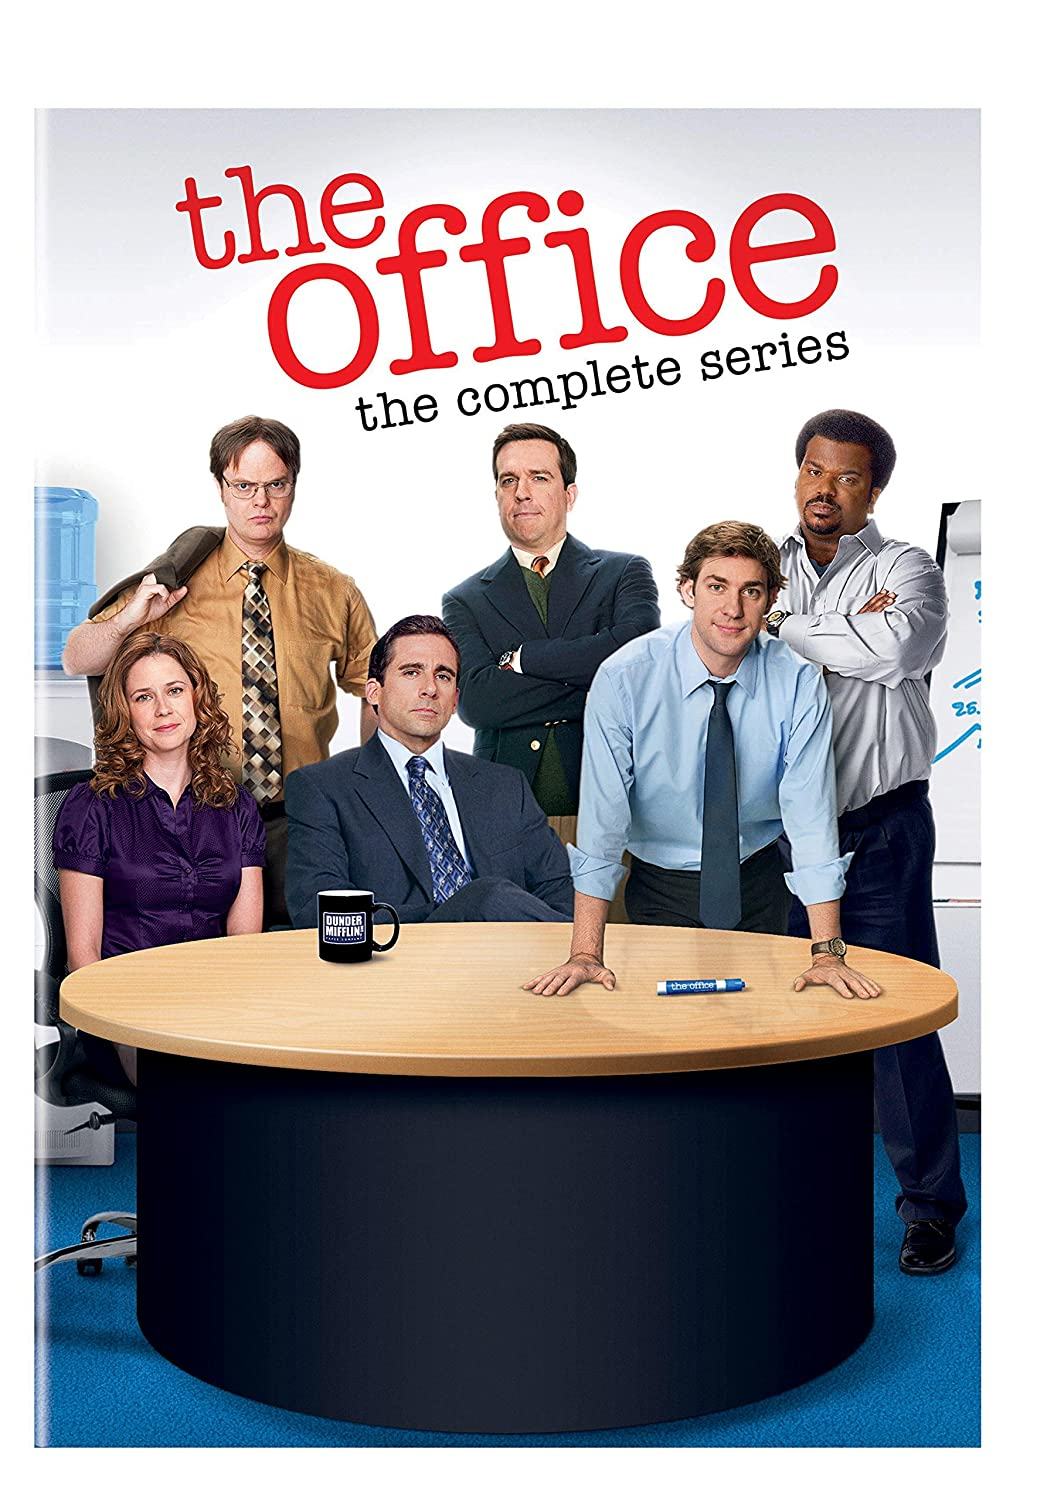 The Office The Complete Series Steve Carell Ed Helms Rainn Wilson John Krasinski B J Novak Jenna Fischer James Spader Craig Robinson Movies Tv